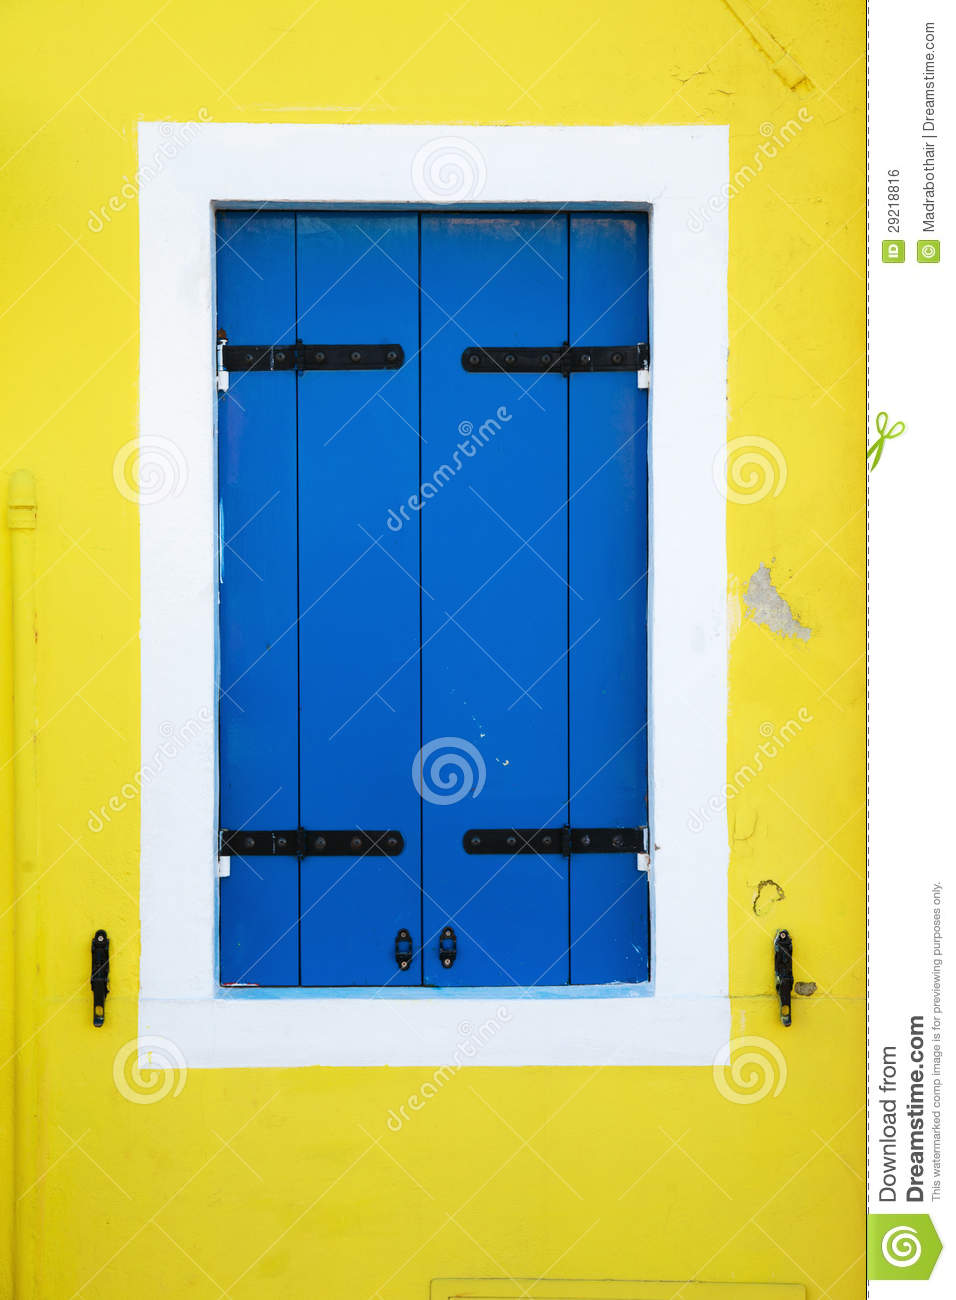 Blue Window Shutters On A Yellow House Wall Royalty Free Stock ...